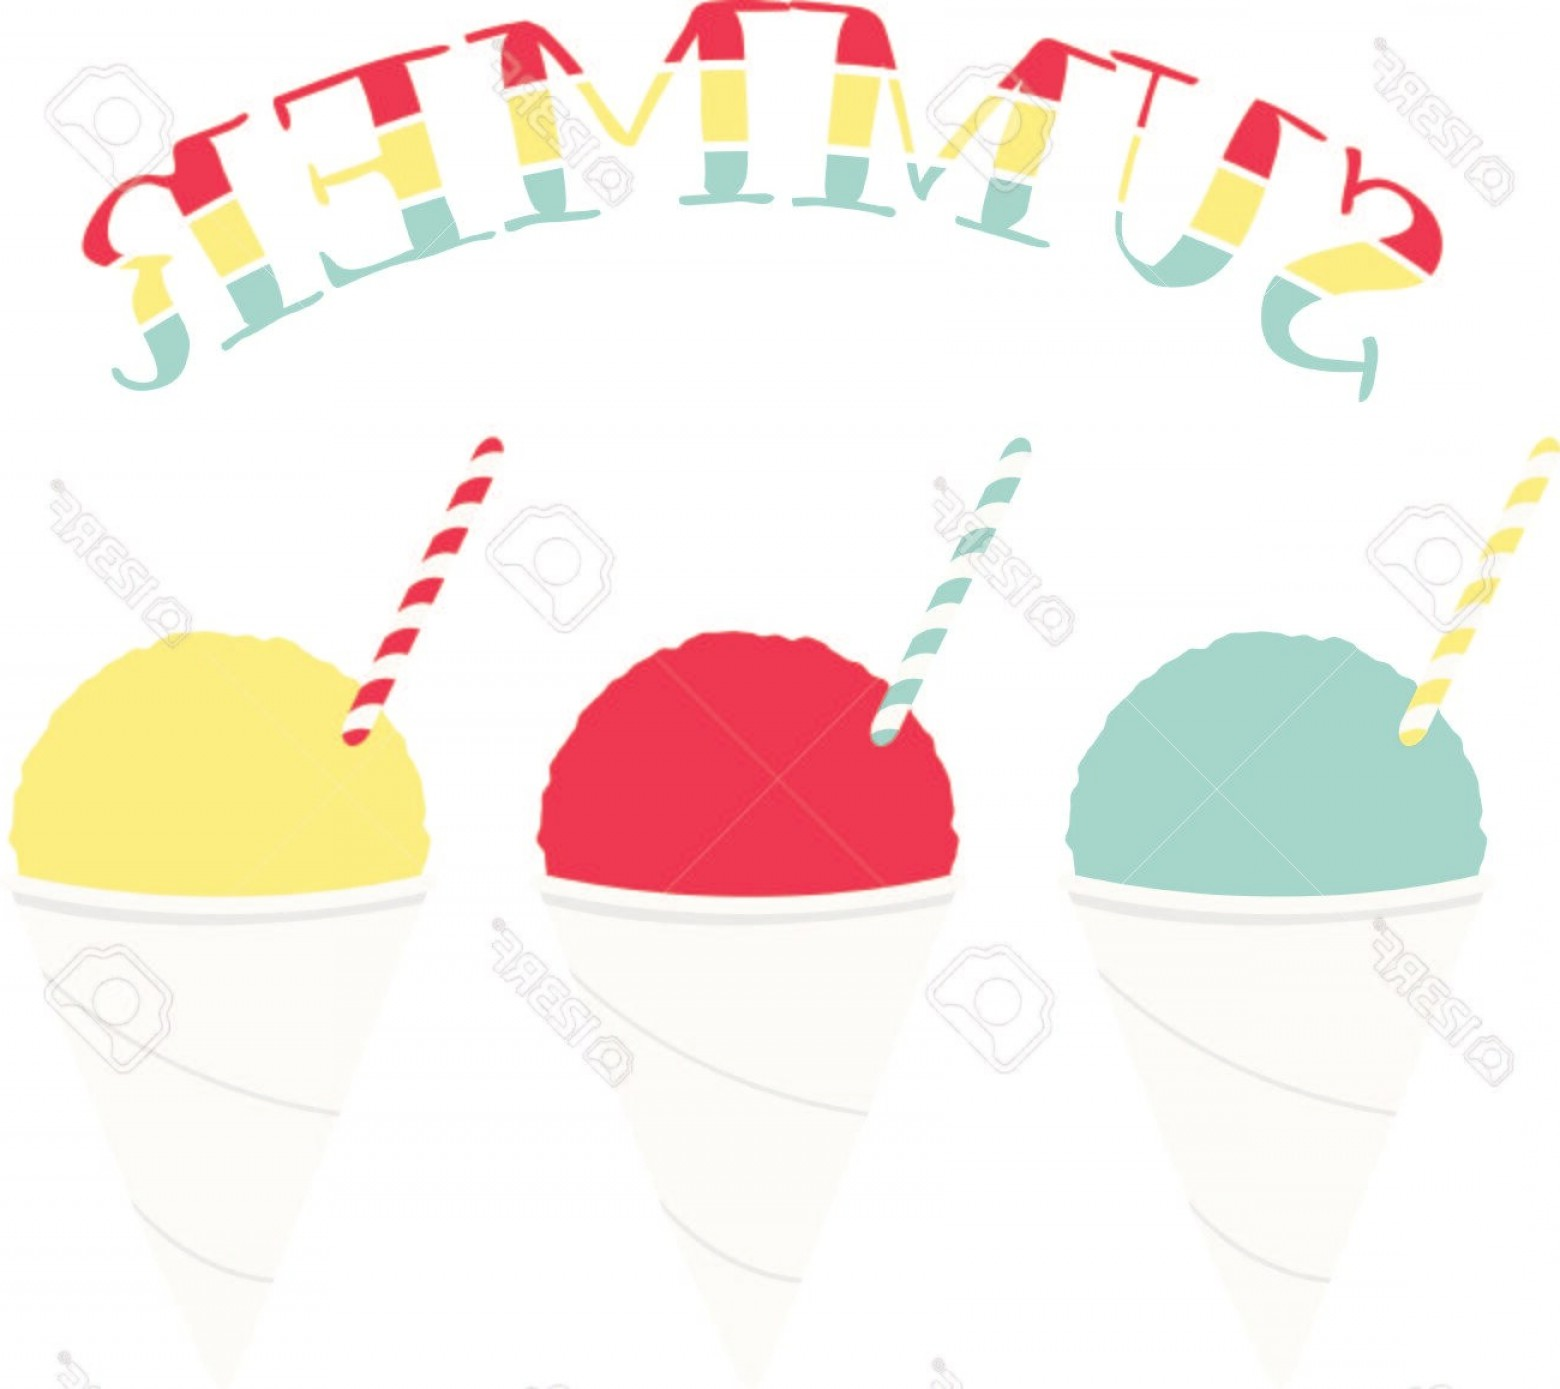 Snow Cone Vector Free: Photostock Vector Three Flavors Of Snow Cones For Iced Dessert Fanciers